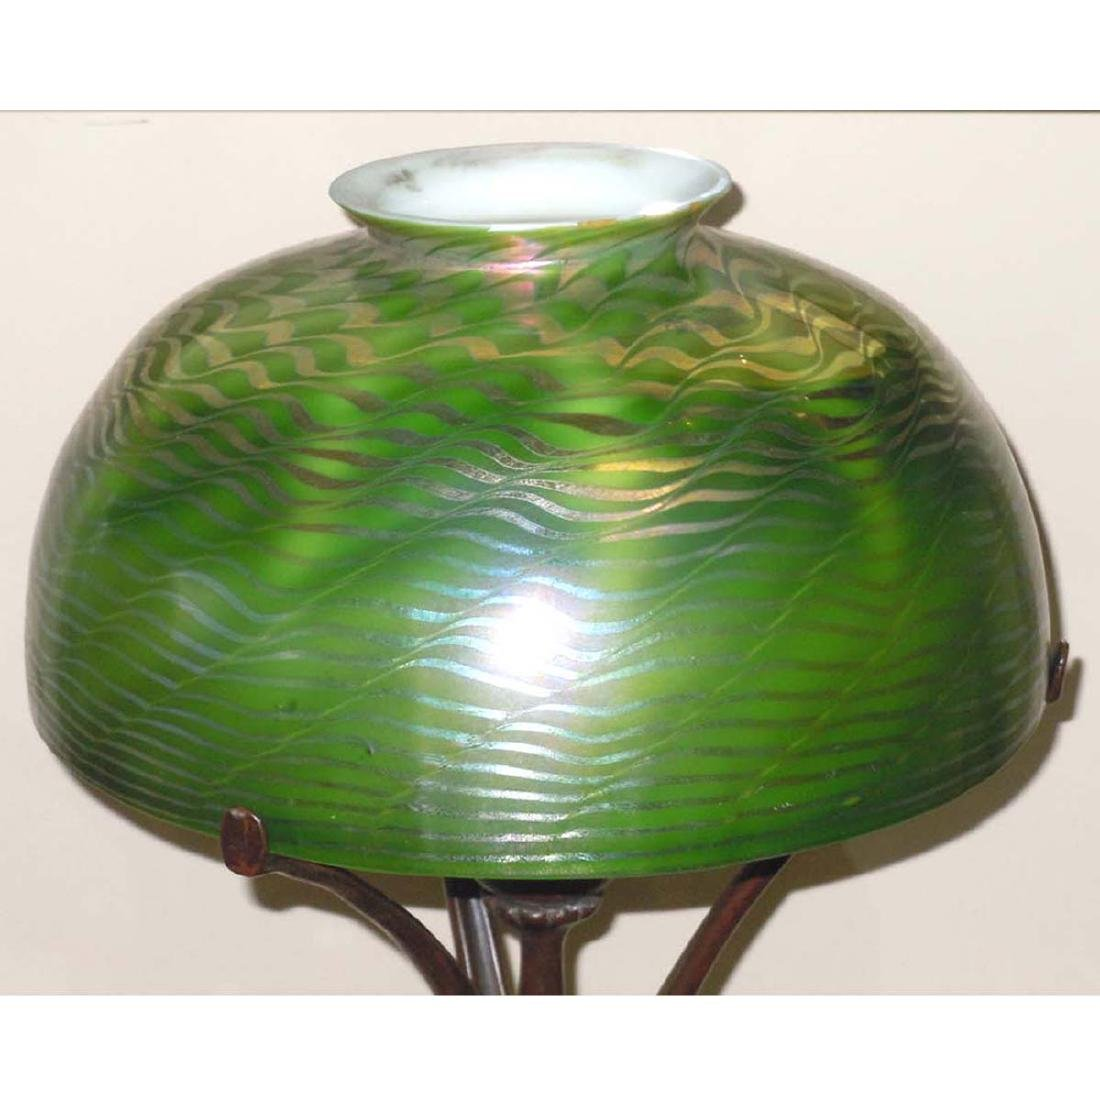 TIFFANY STUDIOS NEW YORK FAVRILE GLASS DAMASCENE LAMP, - 4